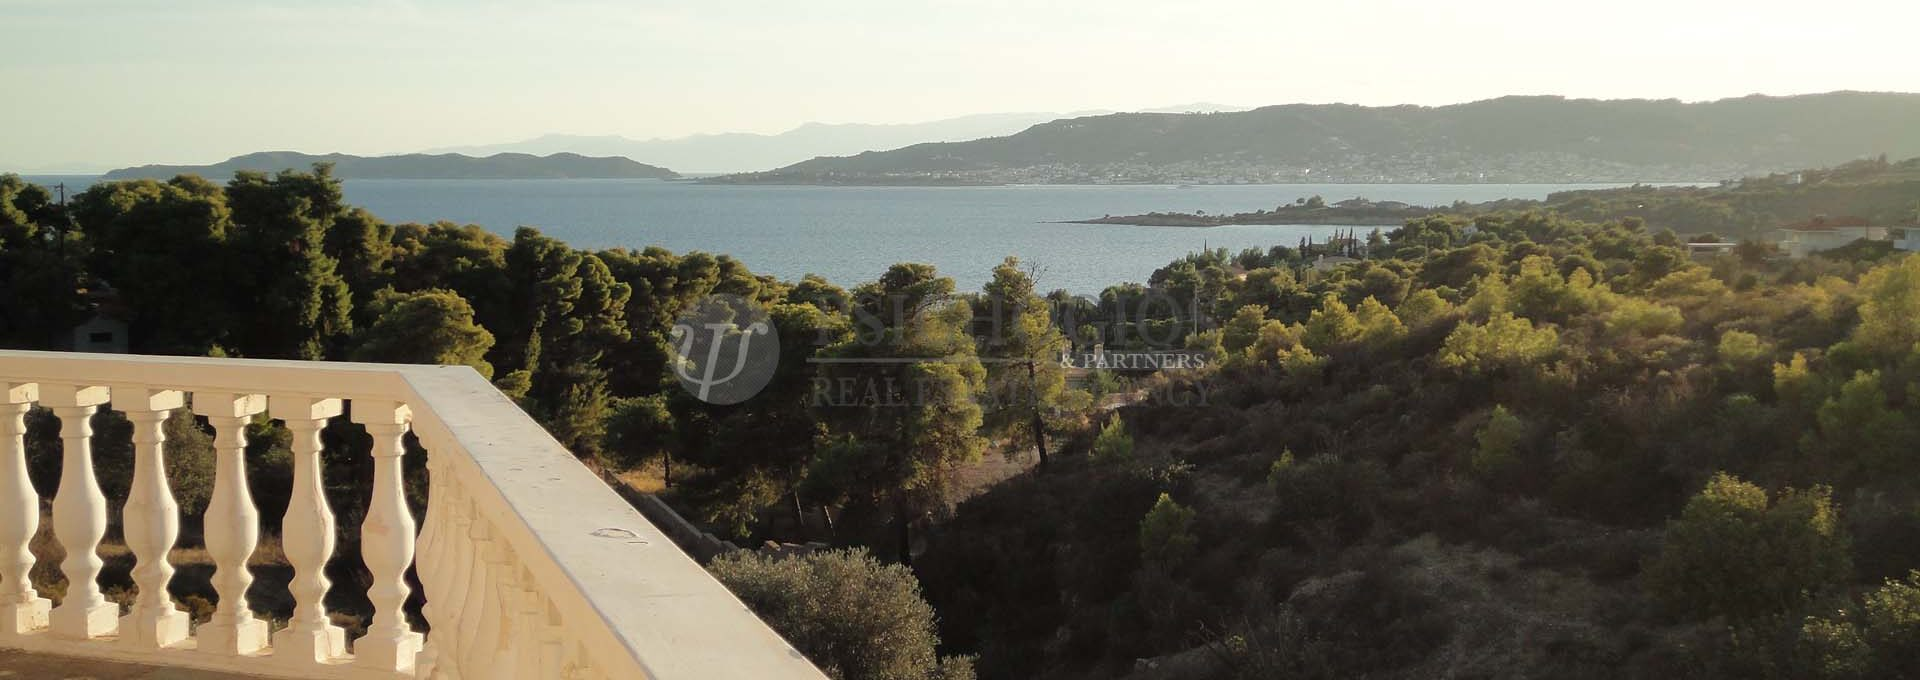 for_sale_house_120_square_meters_3_bedrooms_amazing_view_Agios_Amilianos_Greece (12)